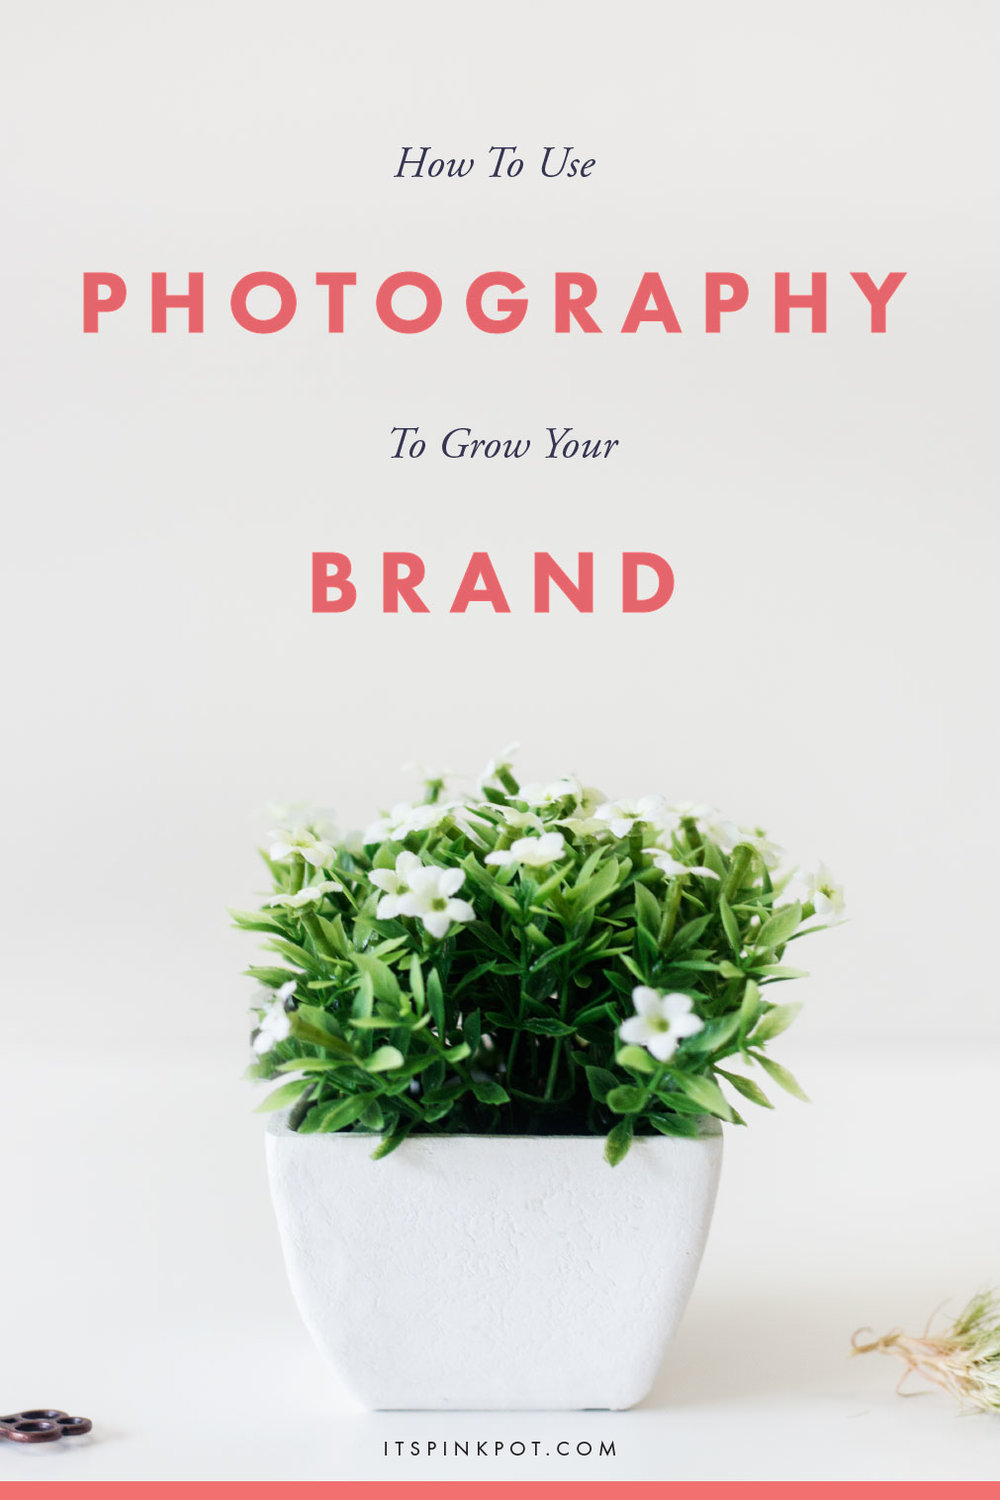 Photography has been a super catalyst for the growth of my blog & business, I've seen the results first hand. And I want the same results for you too. Here s how to use photography to grow your blog & business exponential!